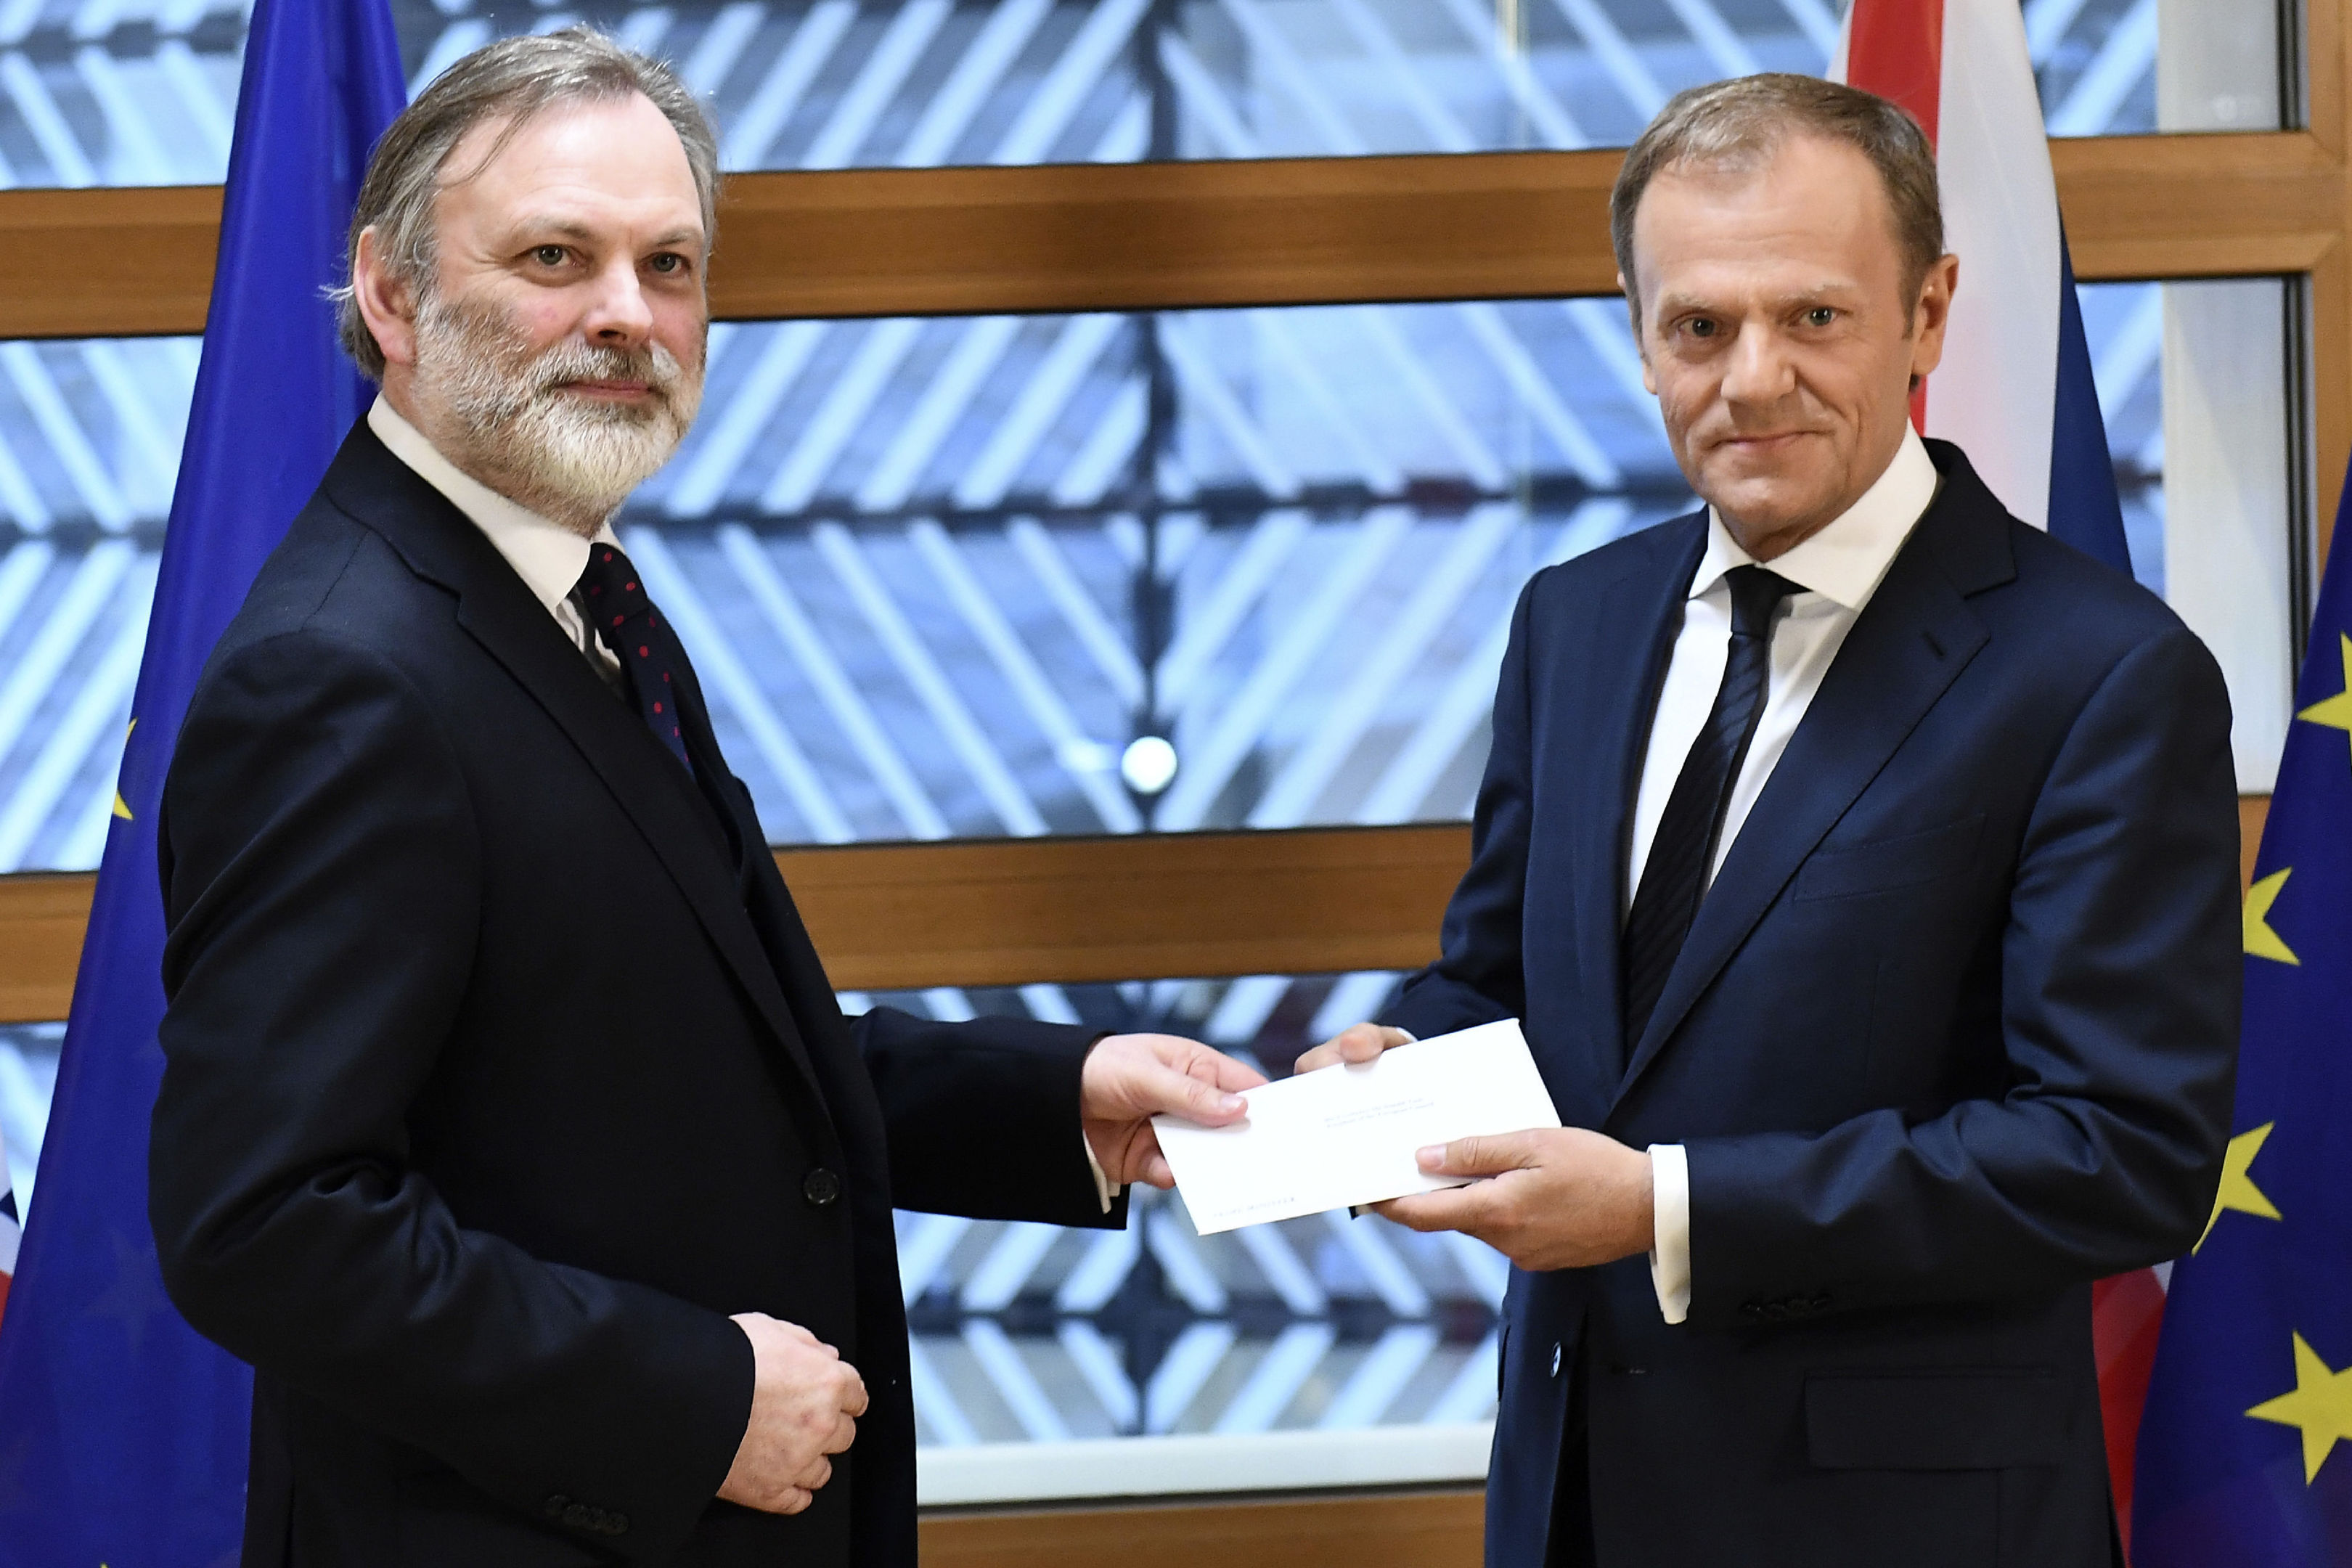 EU Council President Donald Tusk, right, gets Theresa May's formal notice to leave the bloc under Article 50 from UK Permanent Representative to the EU Tim Barrow (Emmanuel Dunand, Pool via AP)